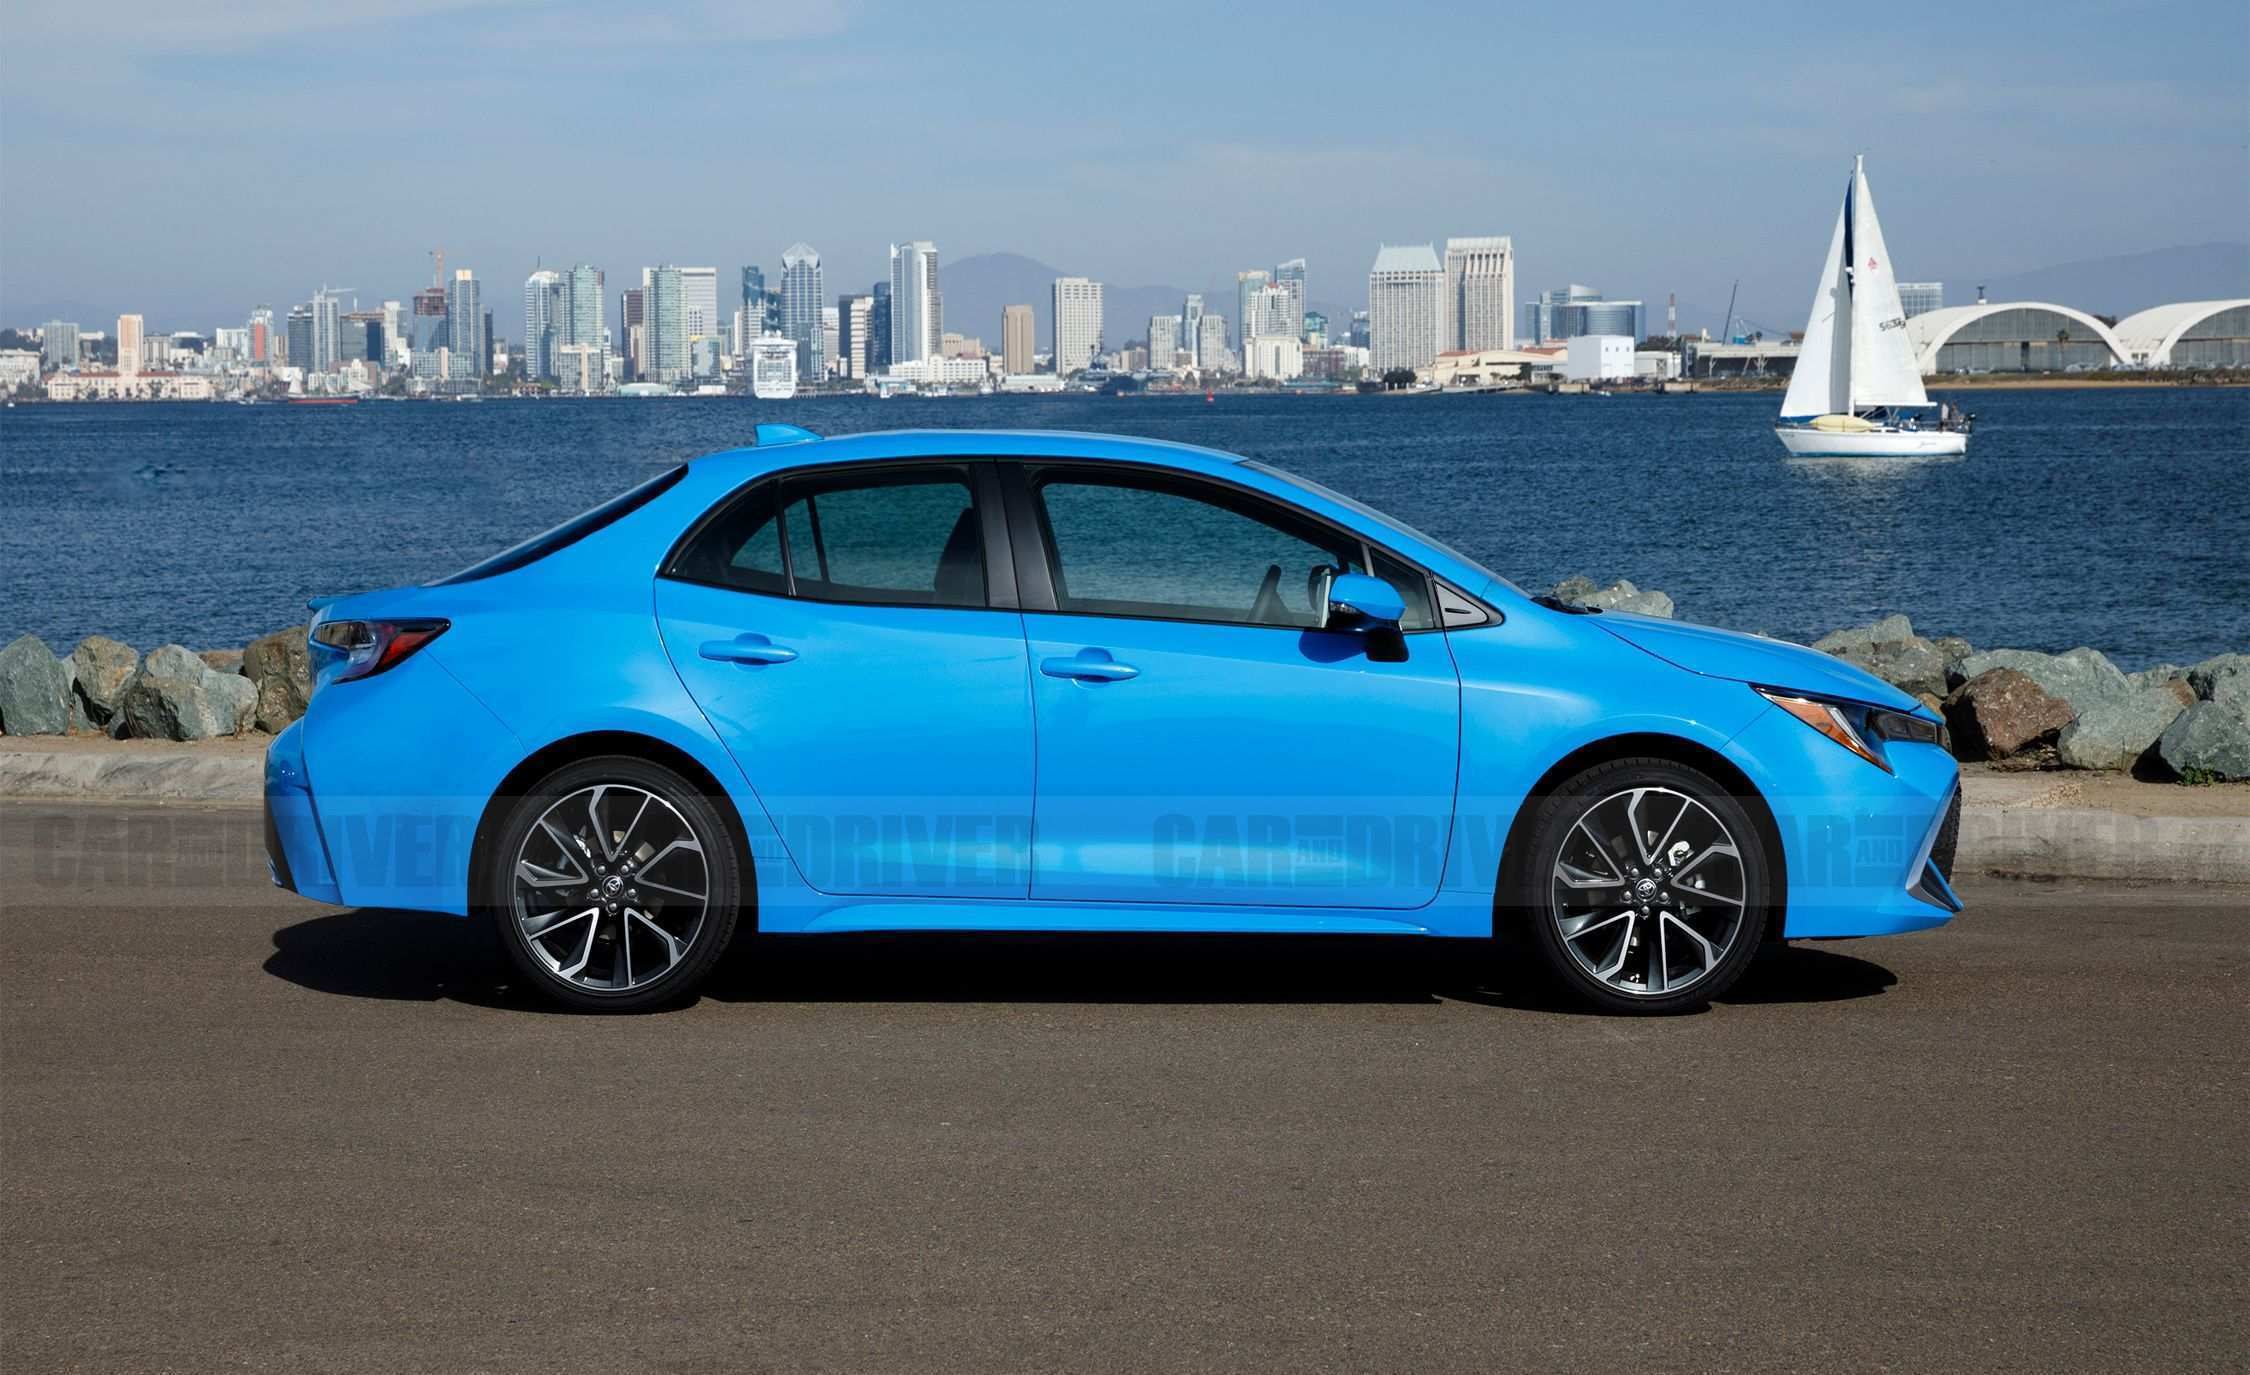 78 Concept of 2020 Toyota Corolla Redesign Configurations with 2020 Toyota Corolla Redesign